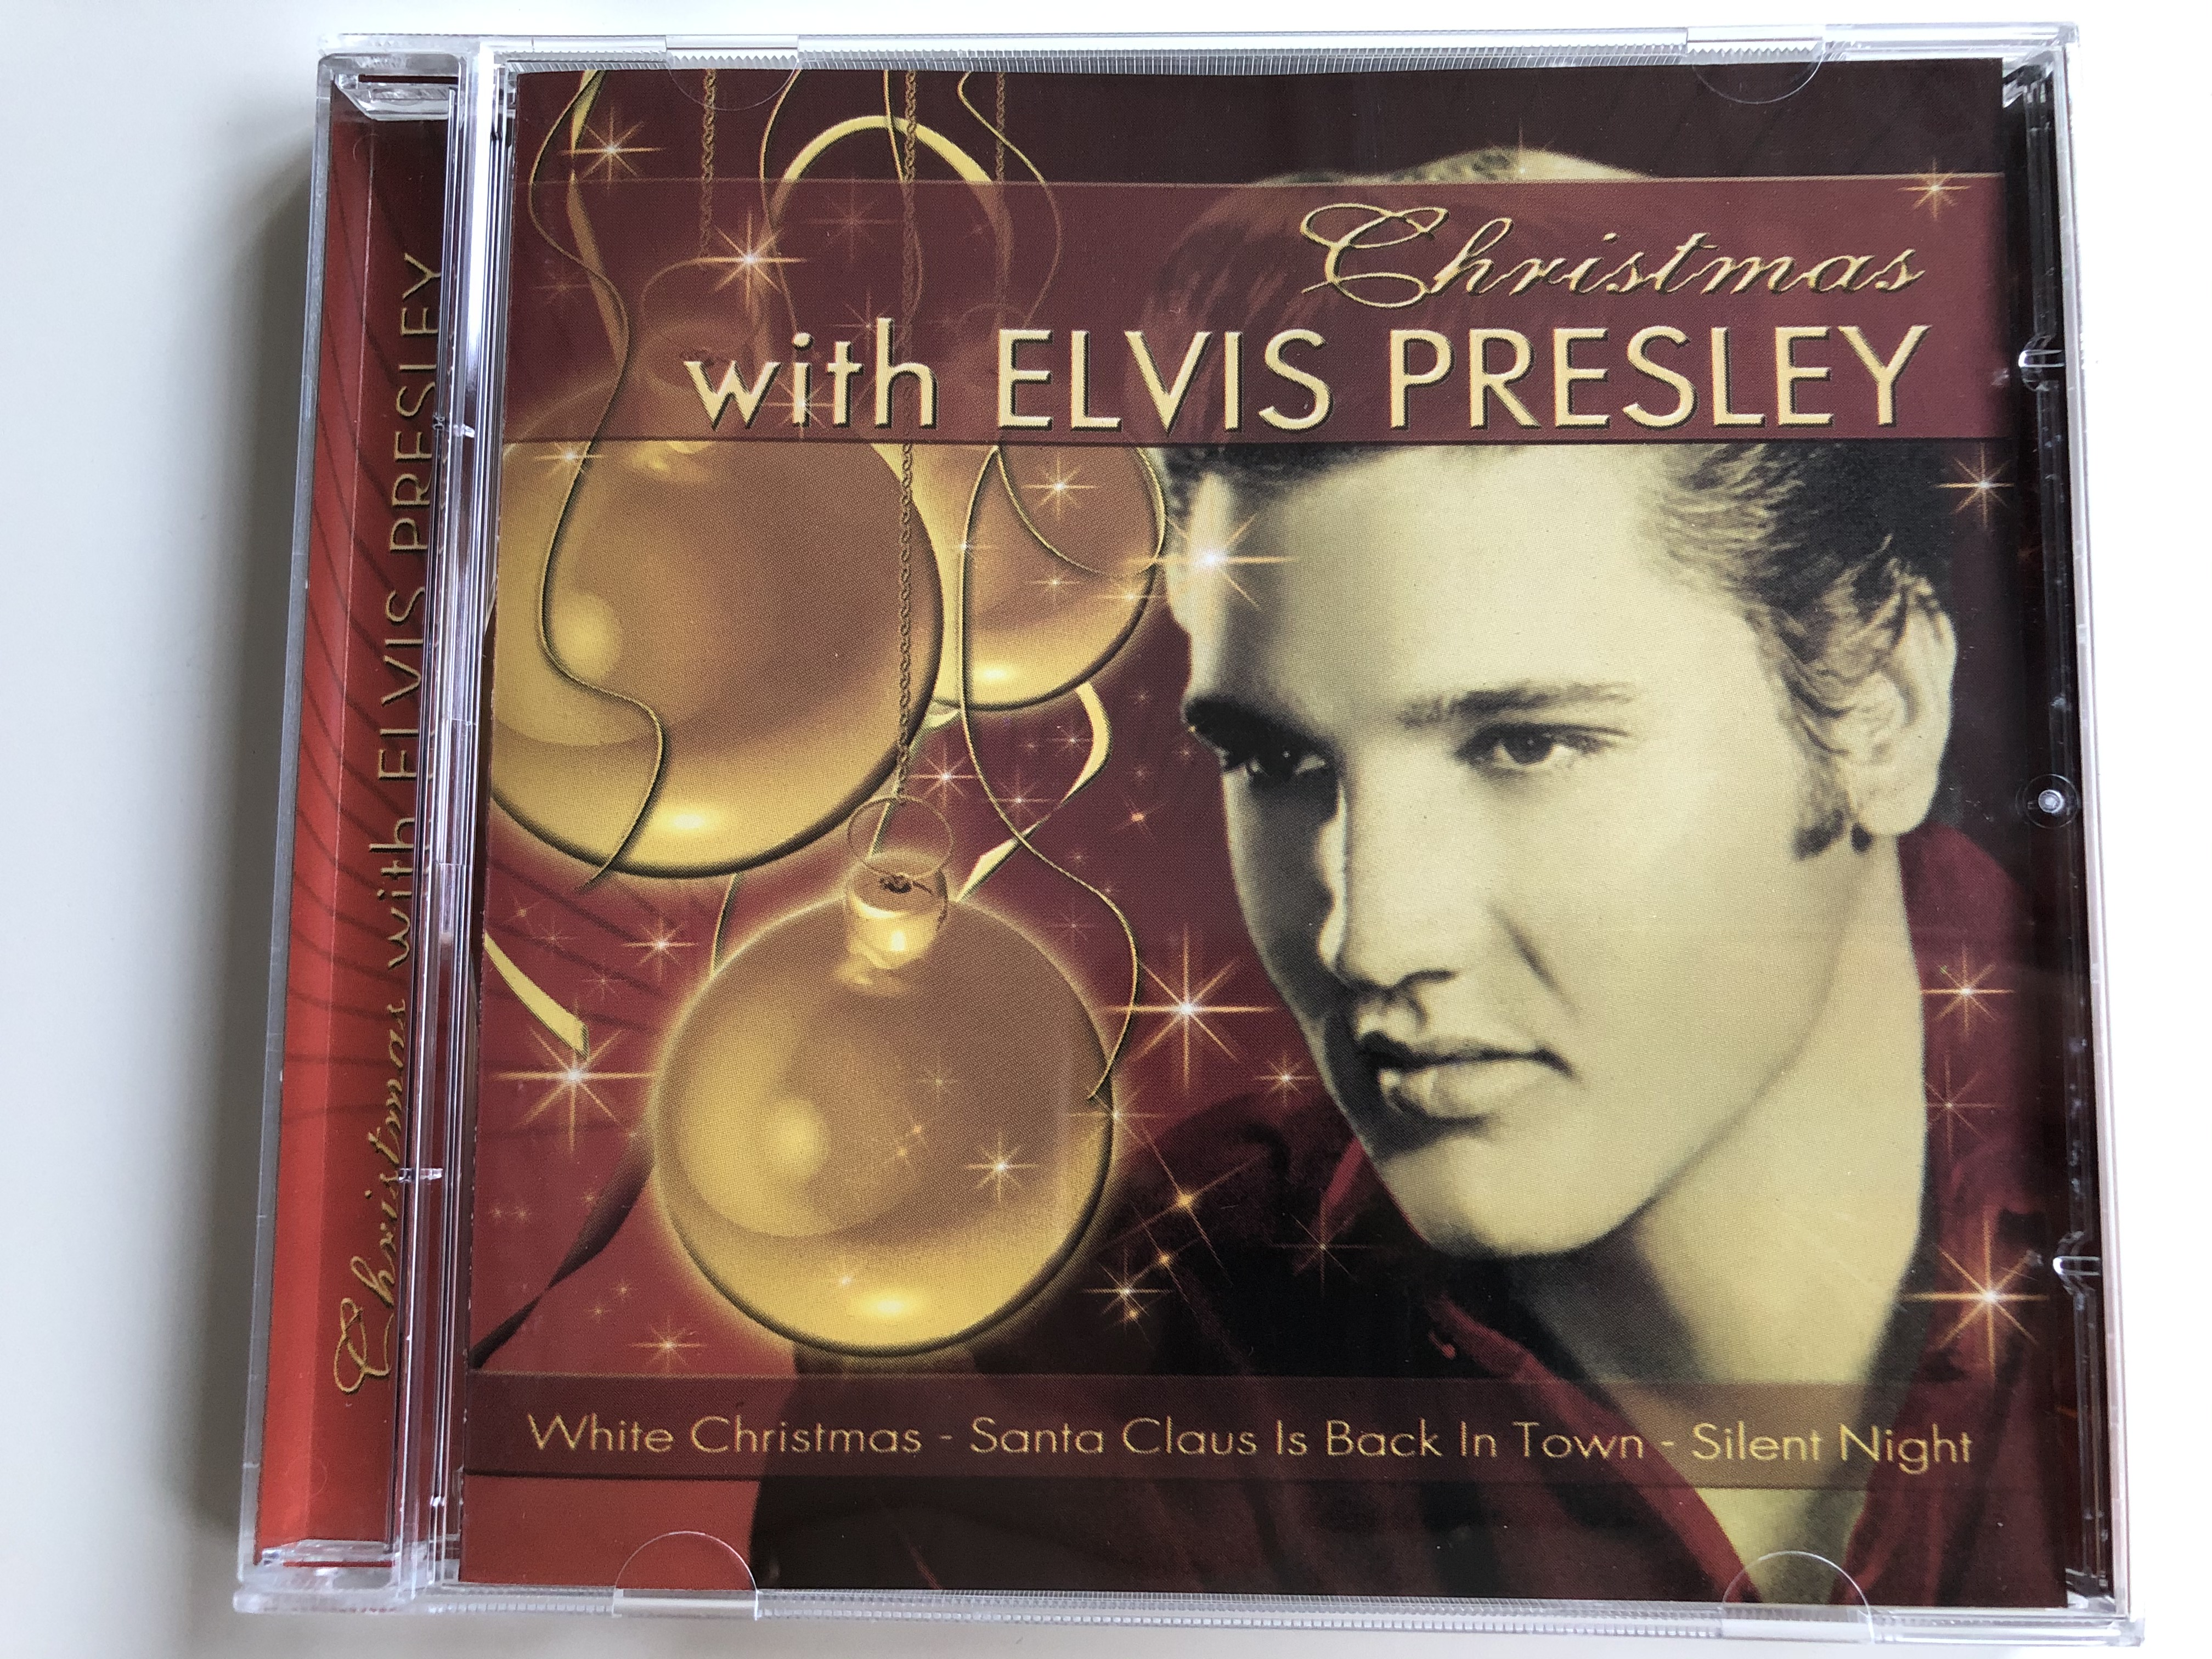 christmas-with-elvis-presley-white-christmas-santa-claus-is-back-in-town-silent-night-lmm-audio-cd-2008-1396942-1-.jpg